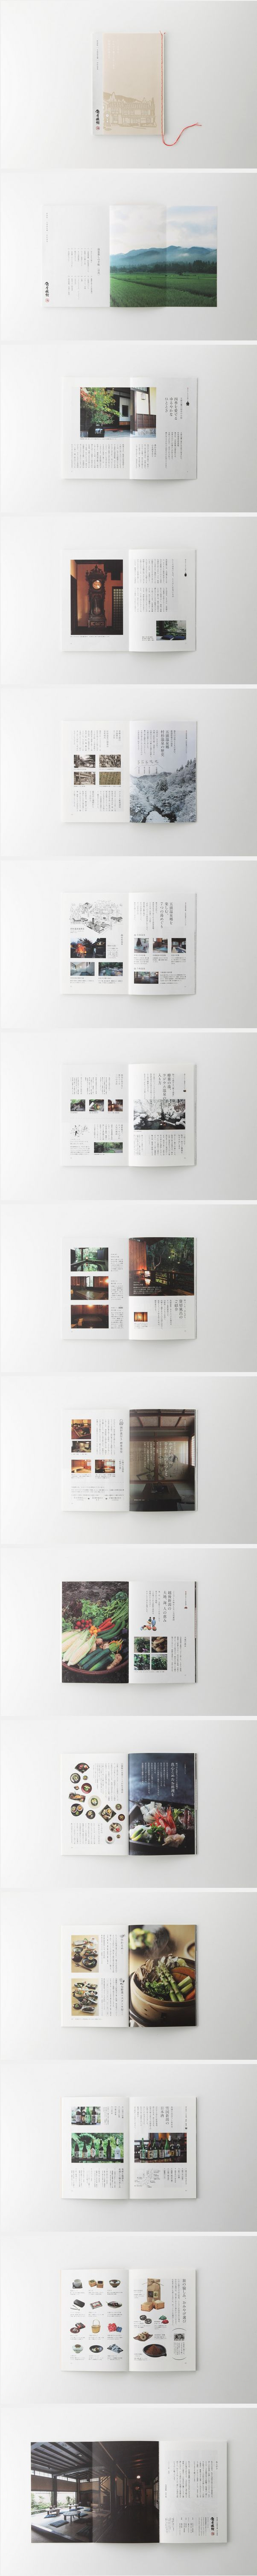 Magazine layout, editorial, design